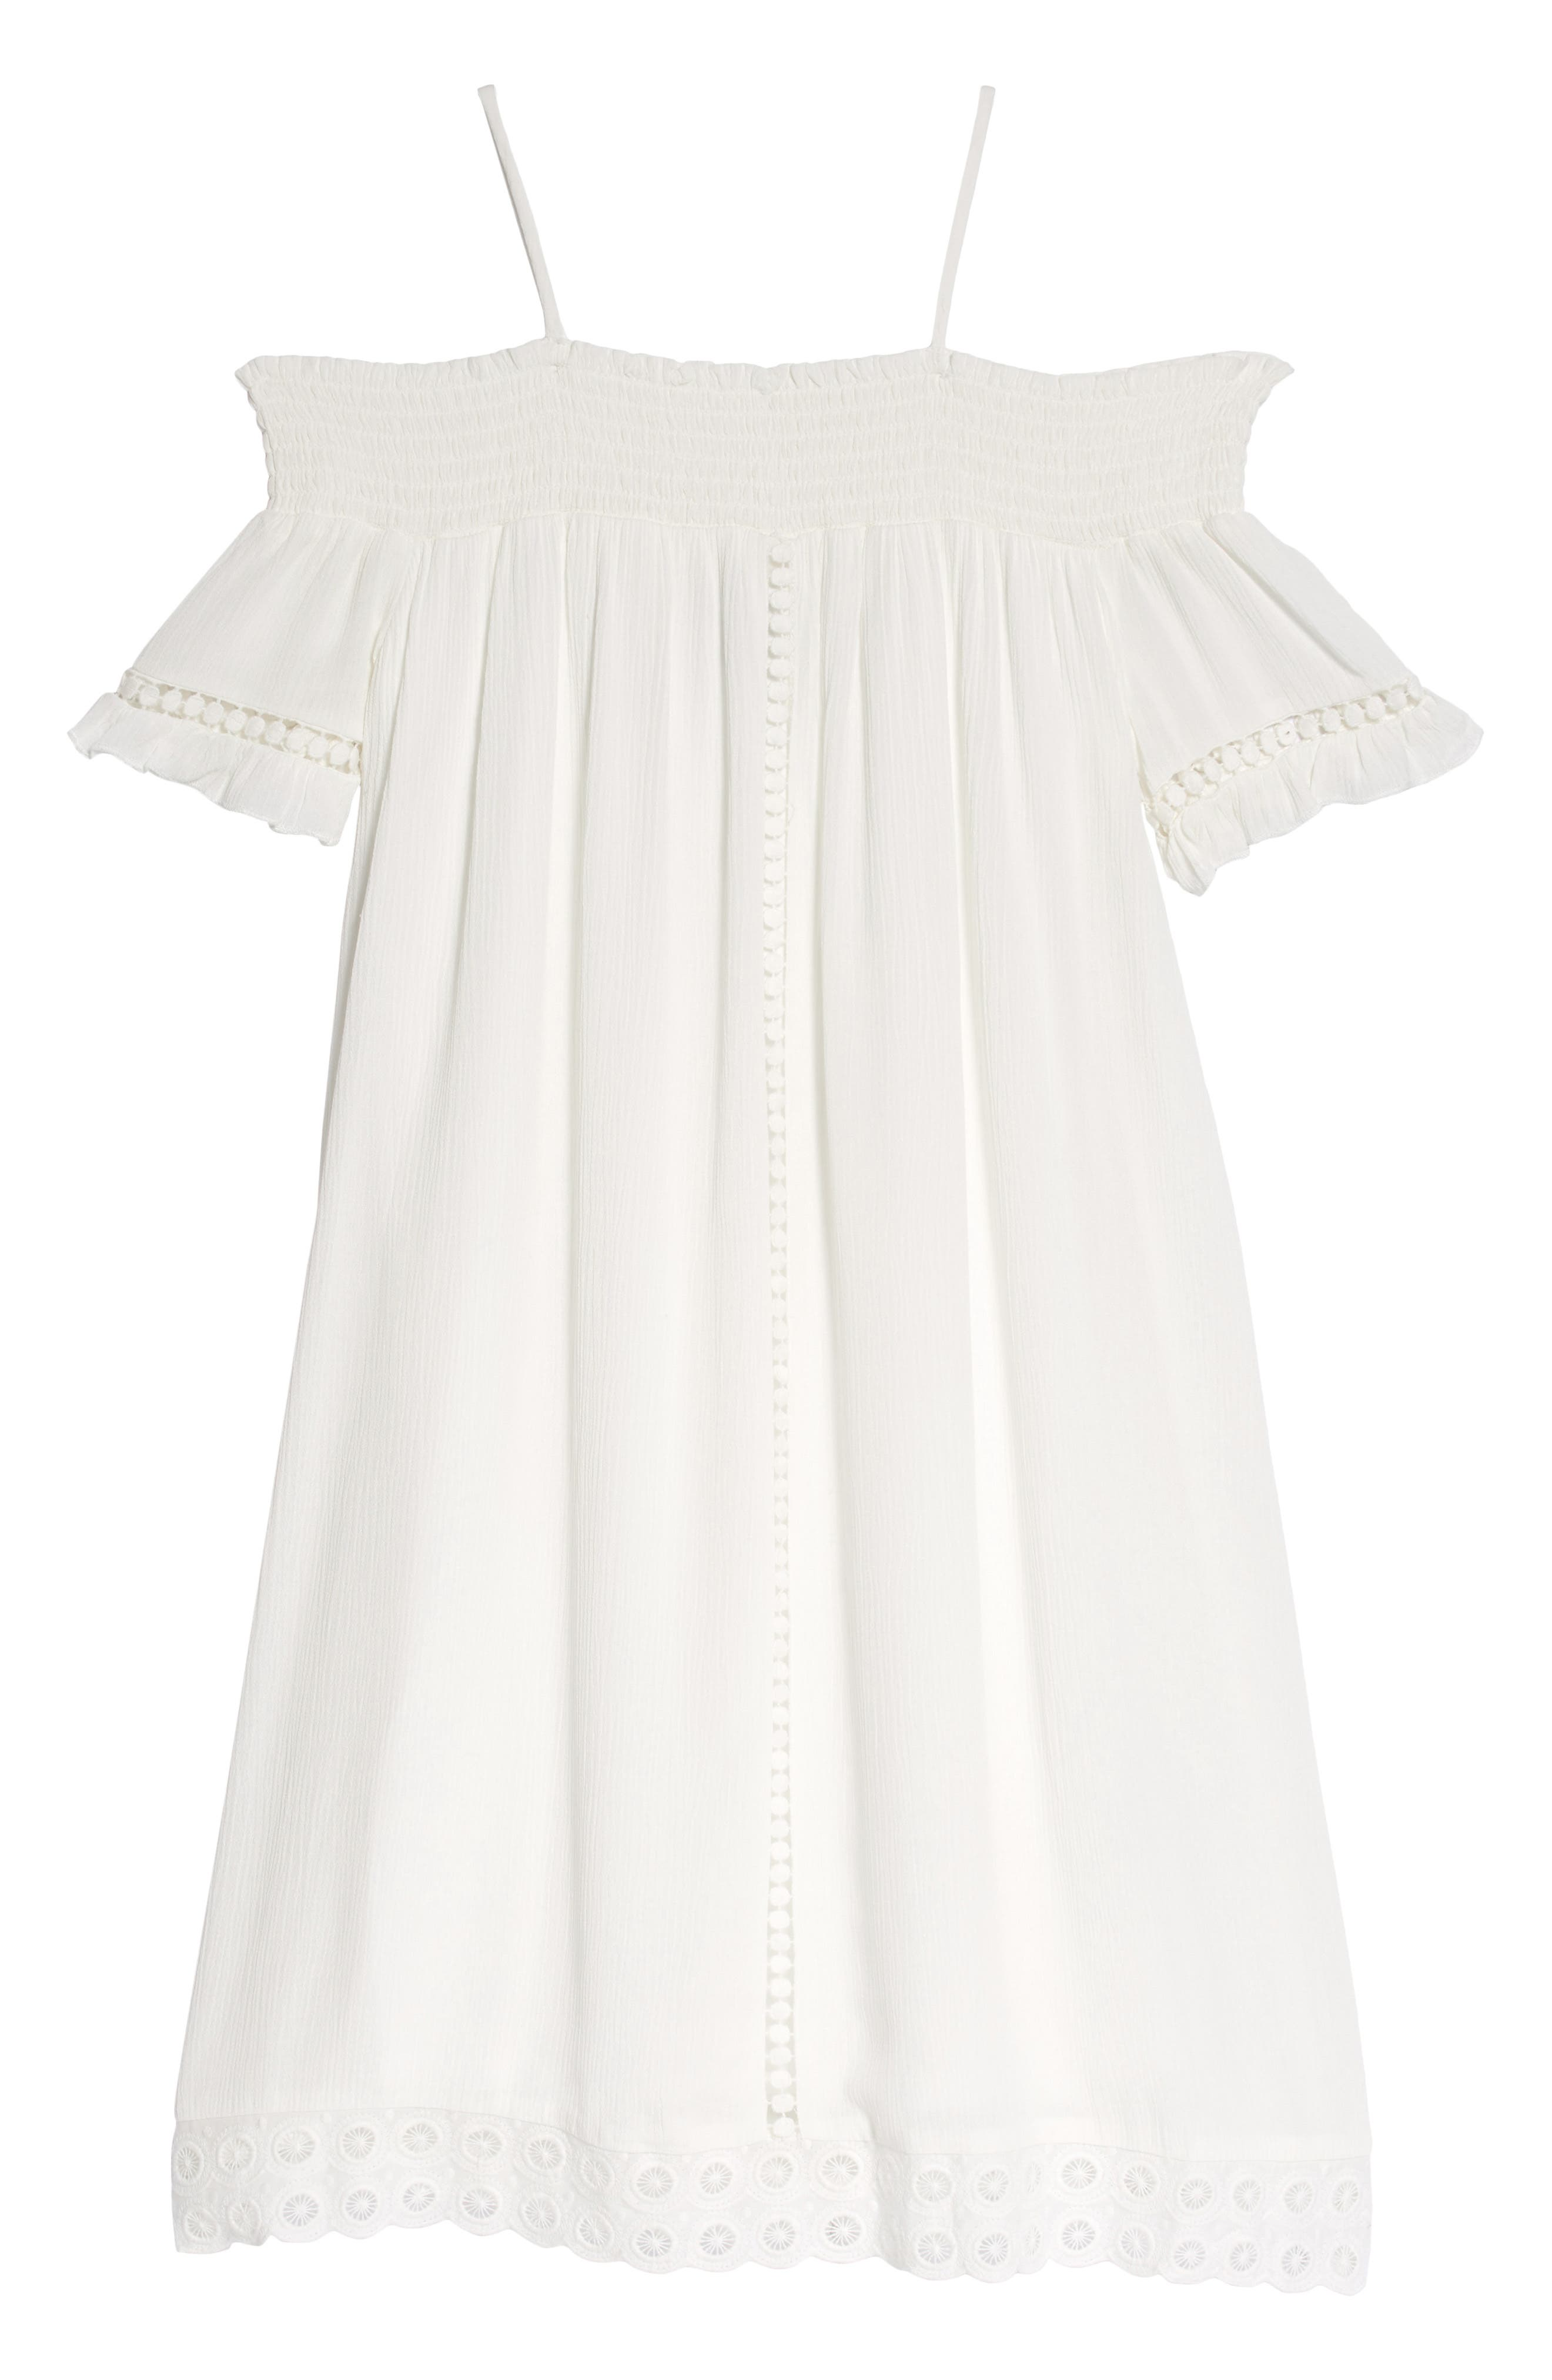 Woven Off the Shoulder Dress,                             Main thumbnail 1, color,                             White